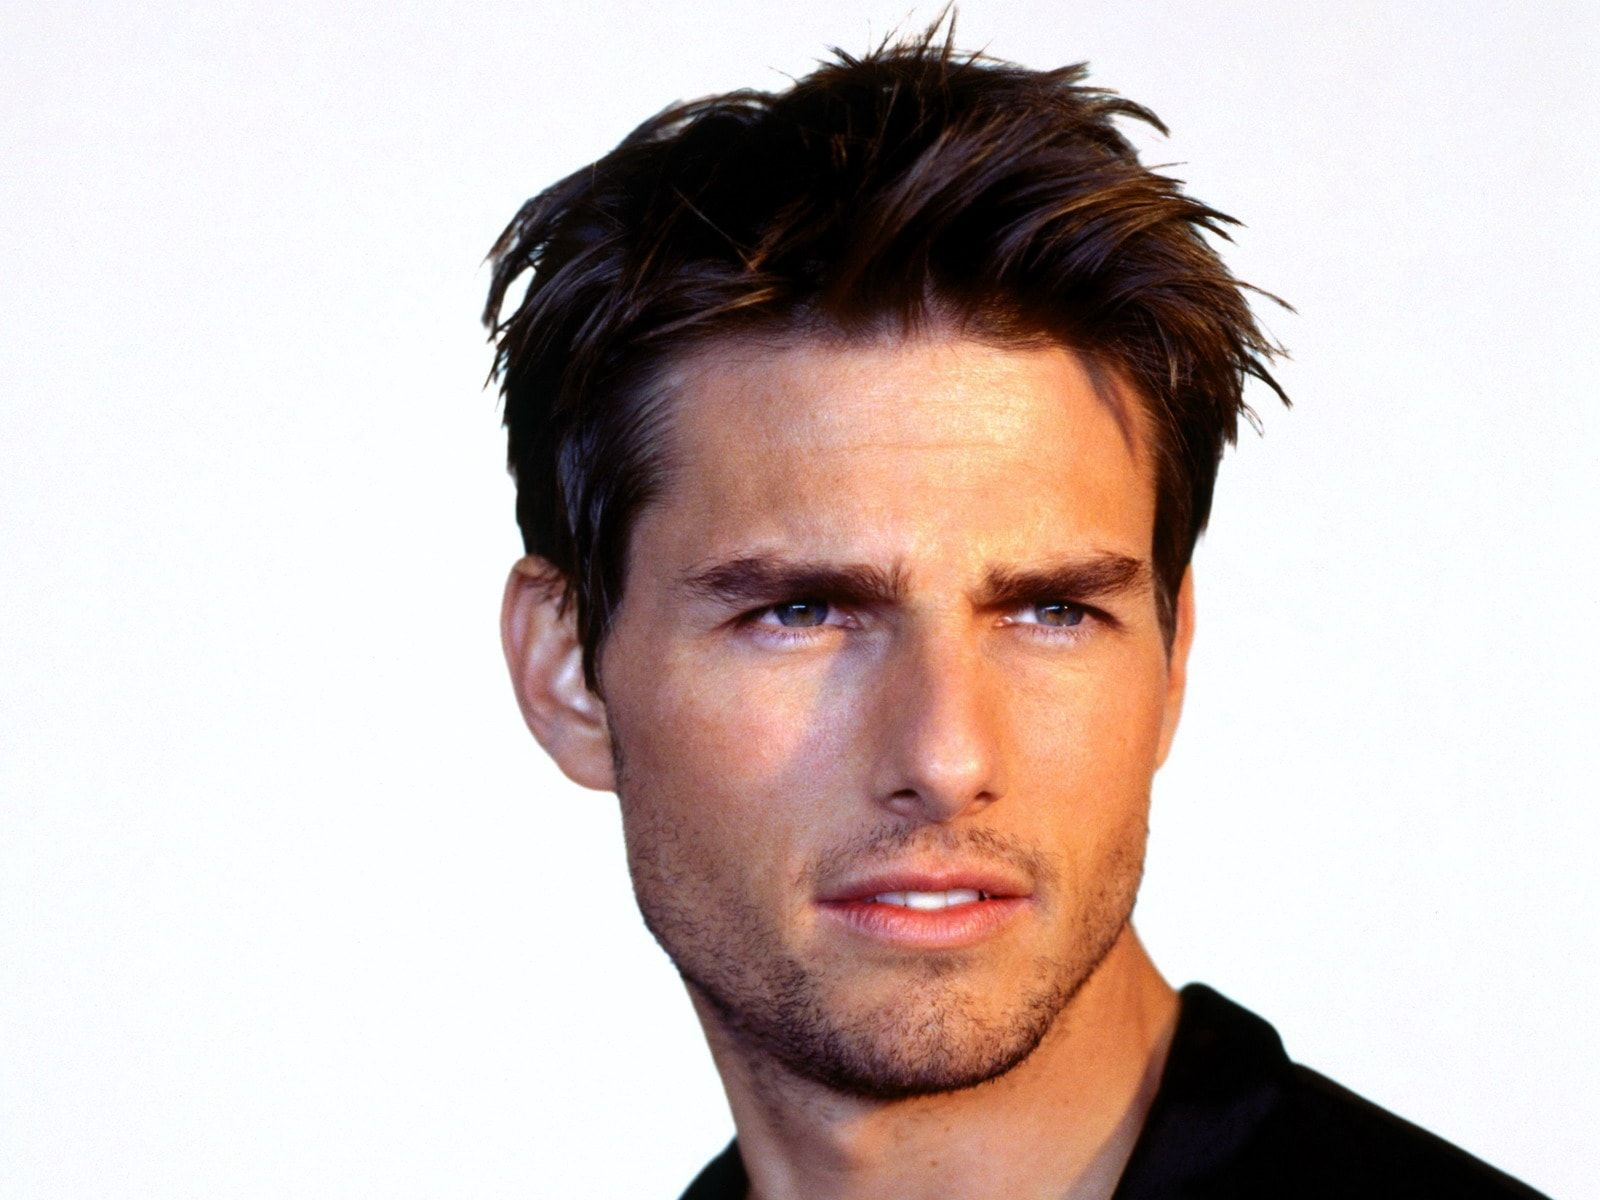 Tom Cruise Wallpapers Top Free Tom Cruise Backgrounds Wallpaperaccess